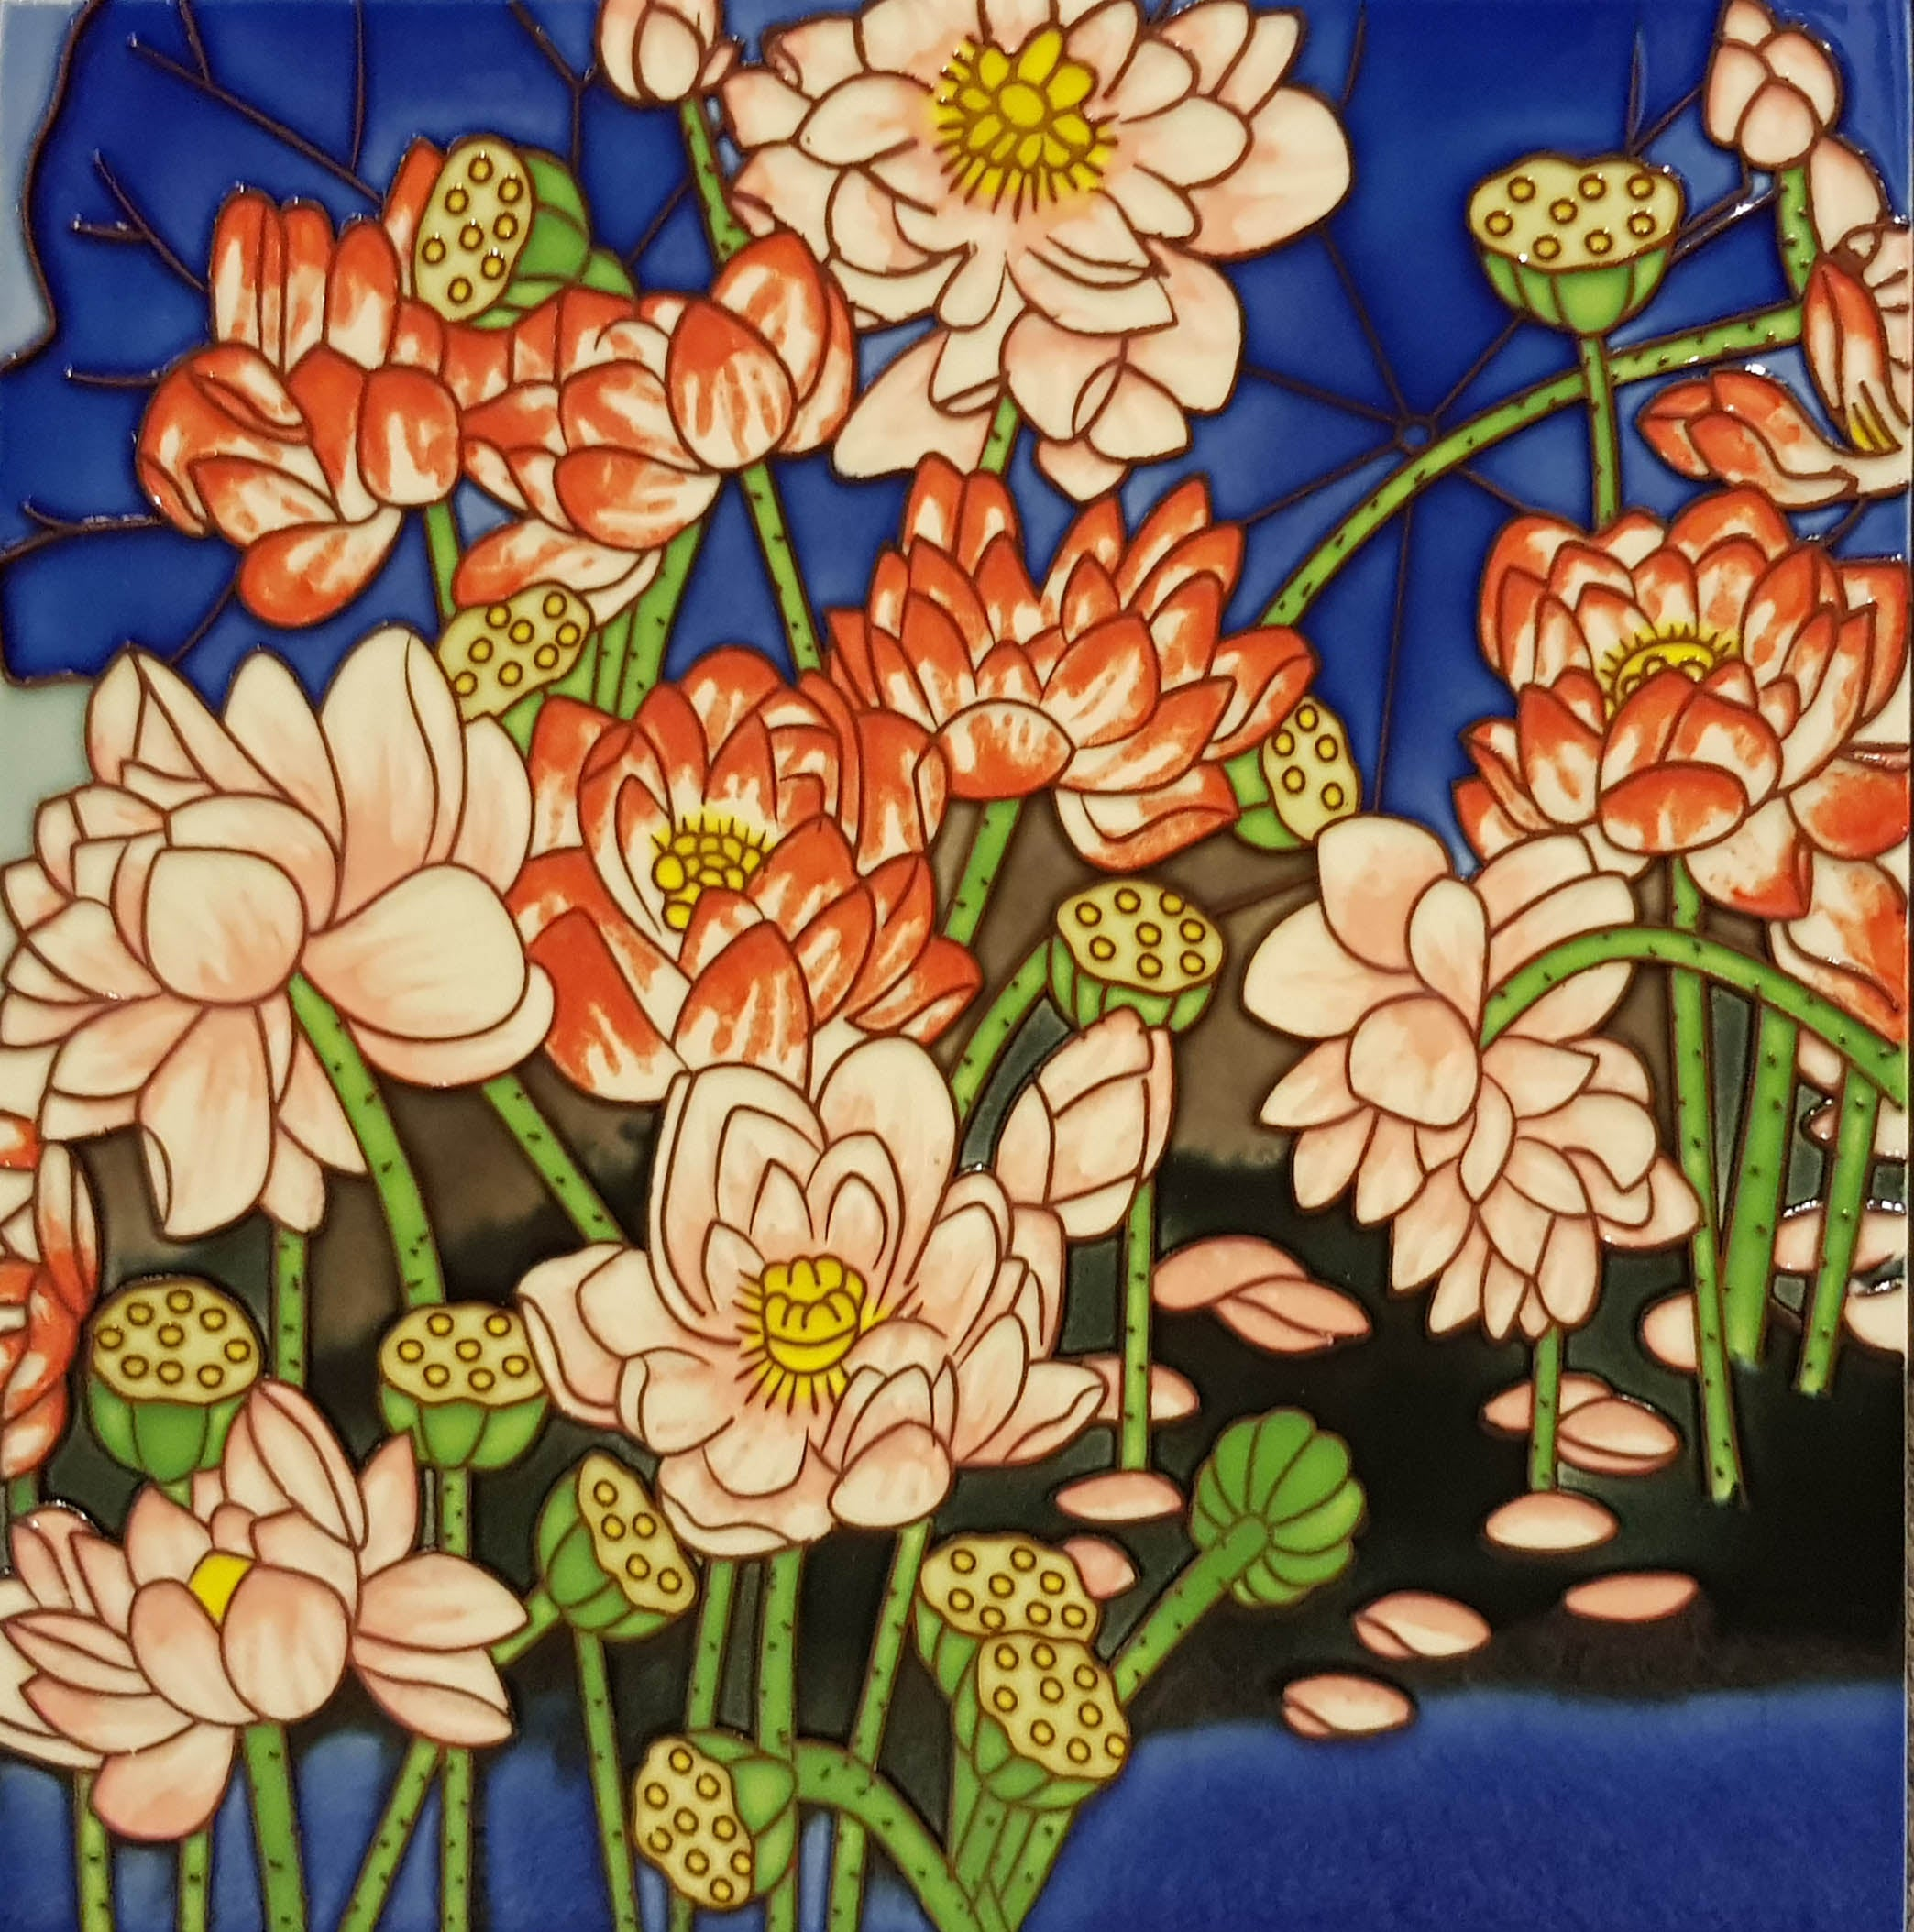 3536 Lotus Pond with Colored Lotus 30cm x 30cm Ceramic Tile